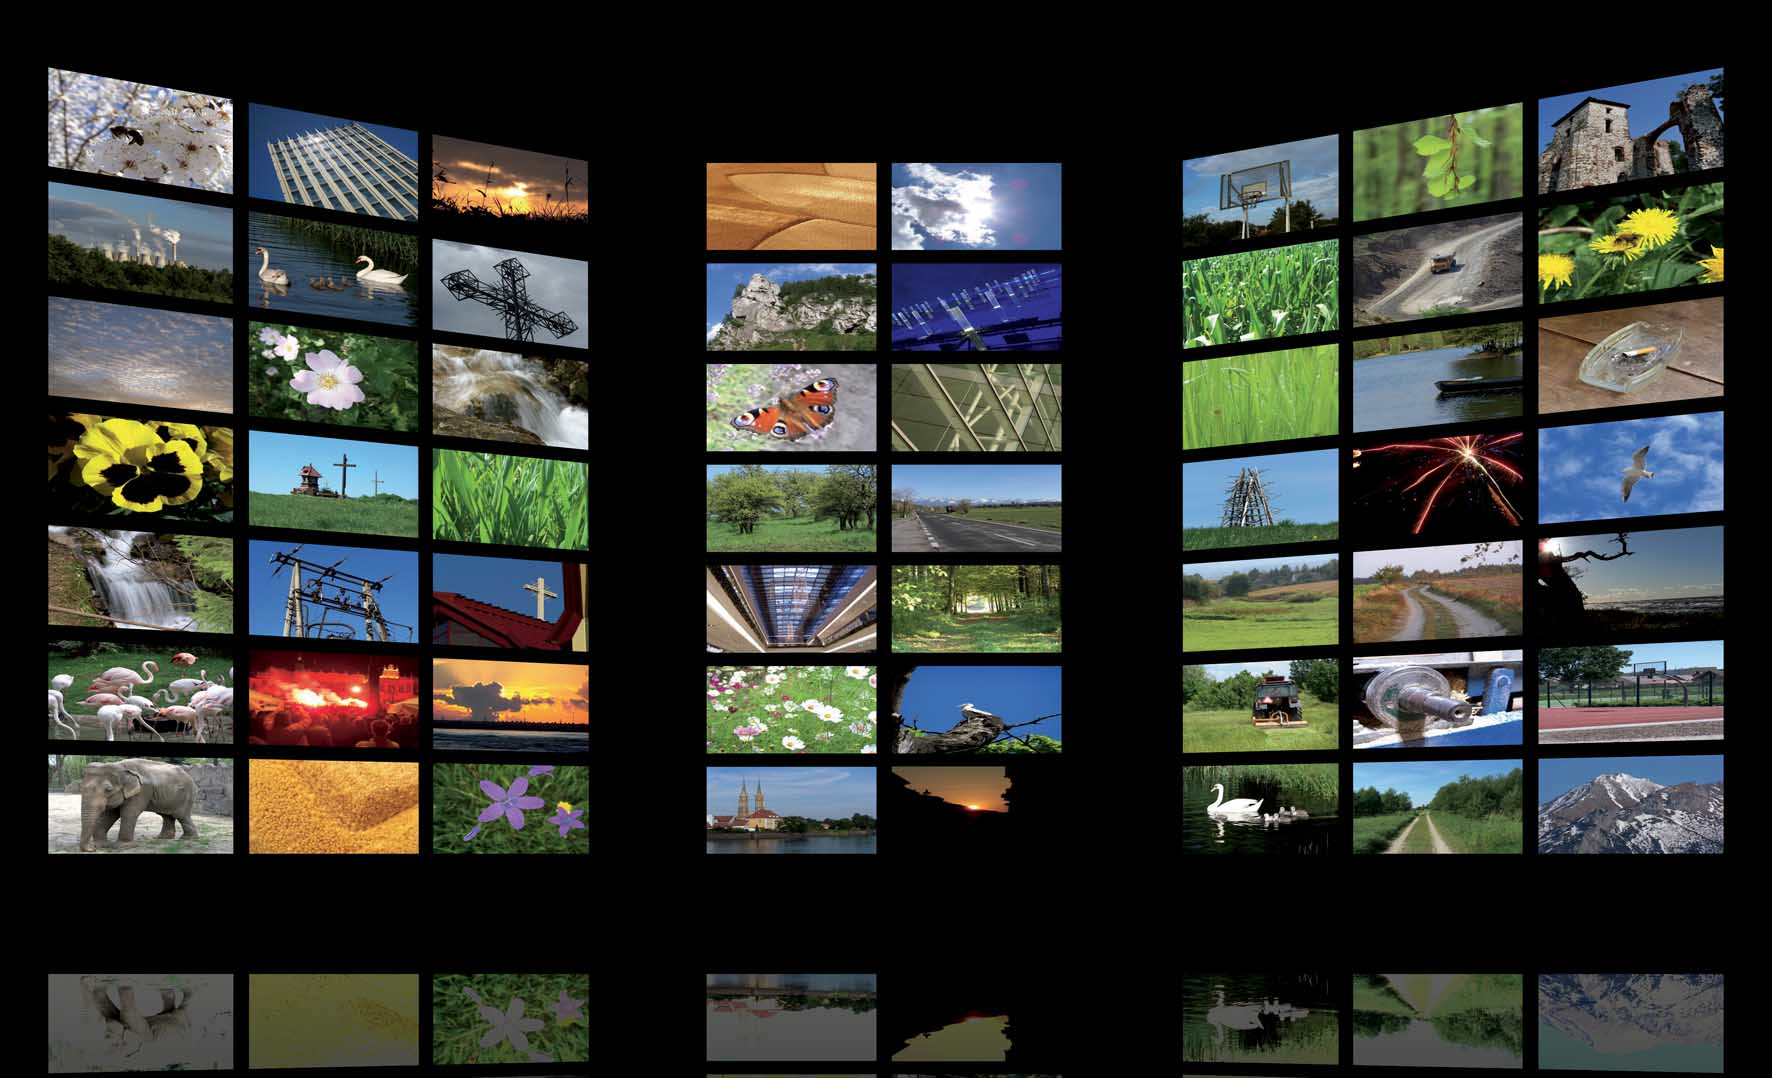 televisione videowall FbySh